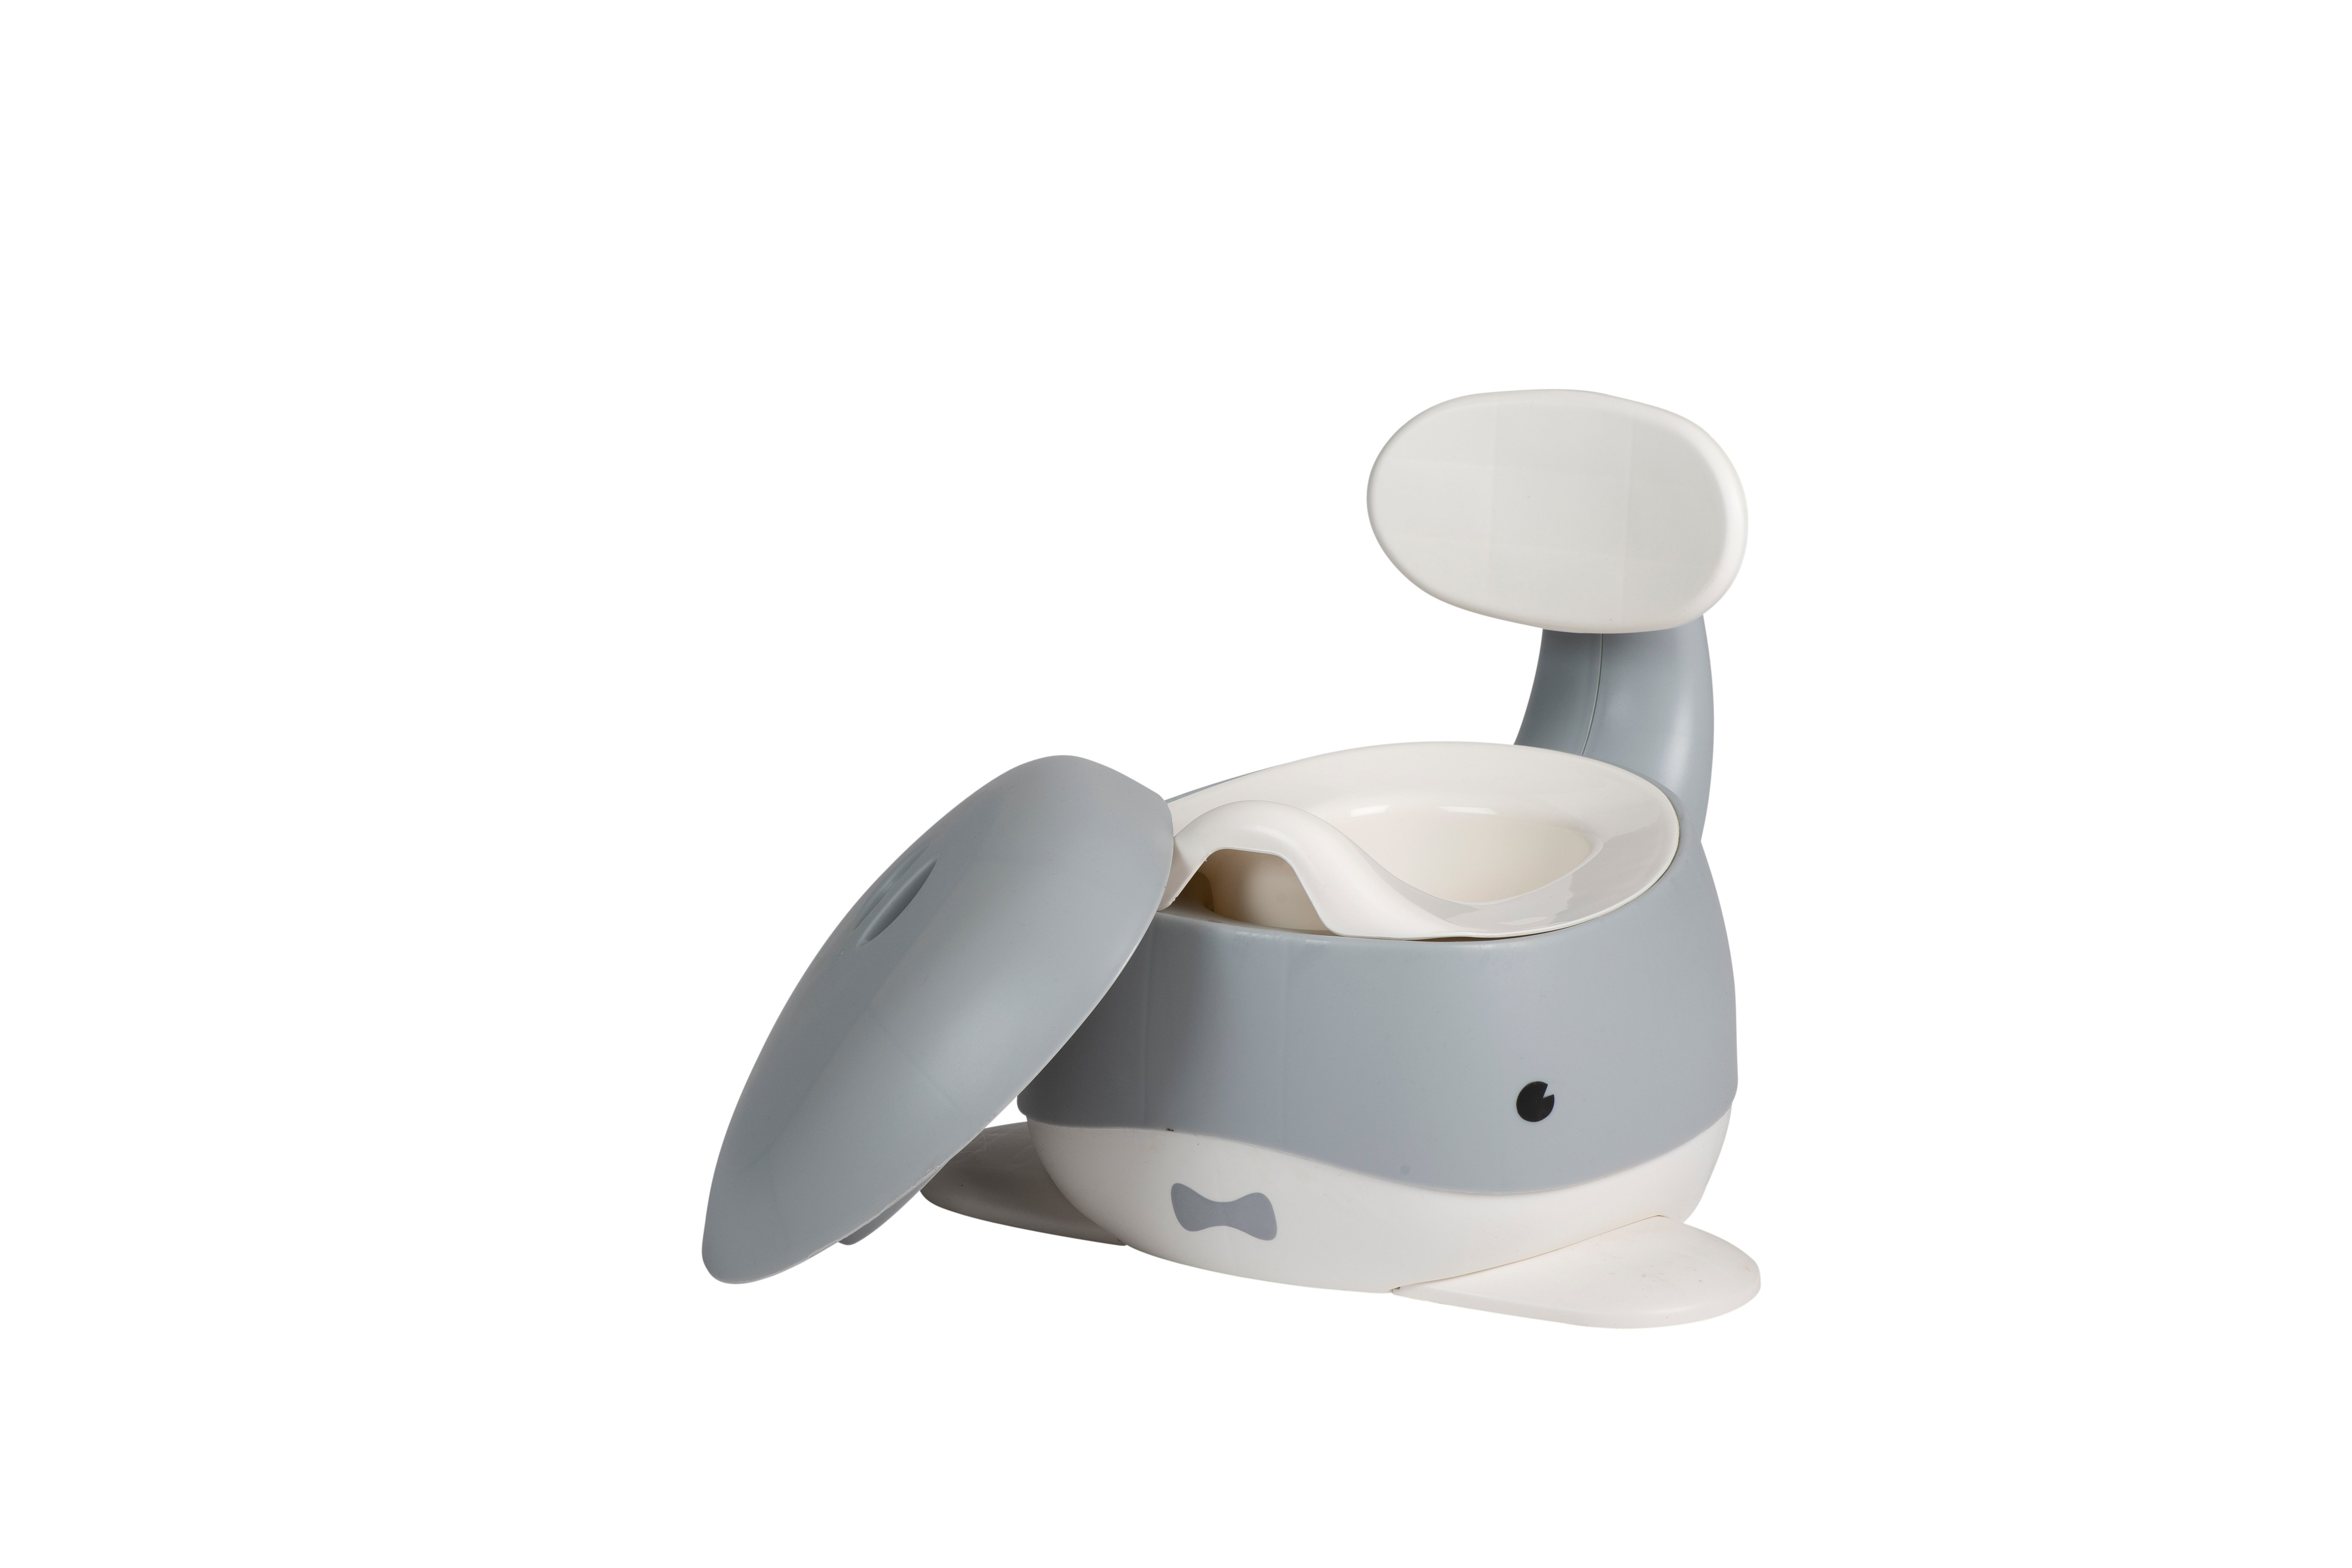 Babytrold - Baby Whale Potty - White and Grey